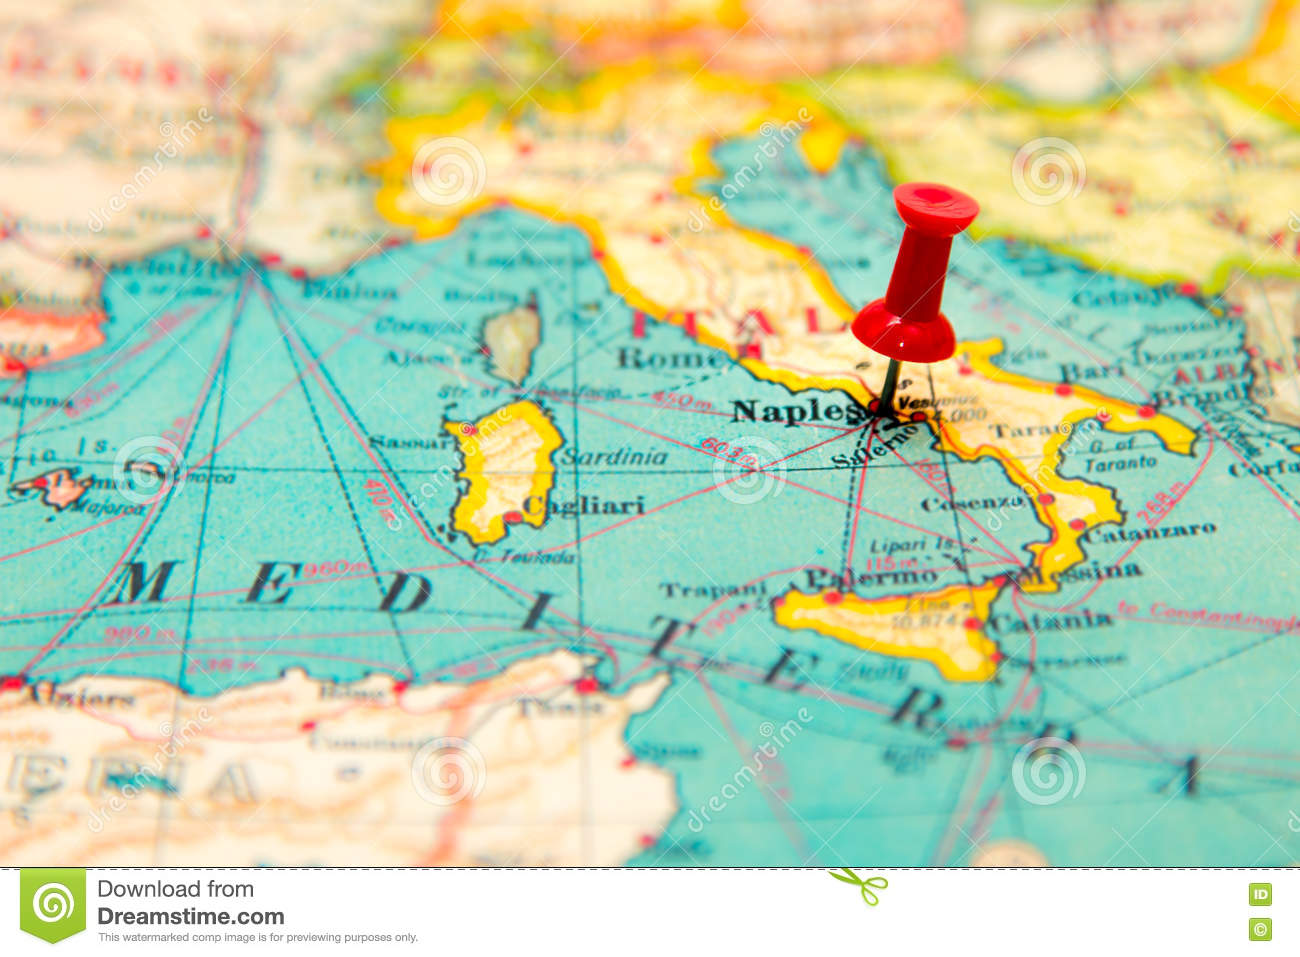 Map Of Europe Showing Italy.Naples Italy Pinned On Vintage Map Of Europe Stock Image Image Of